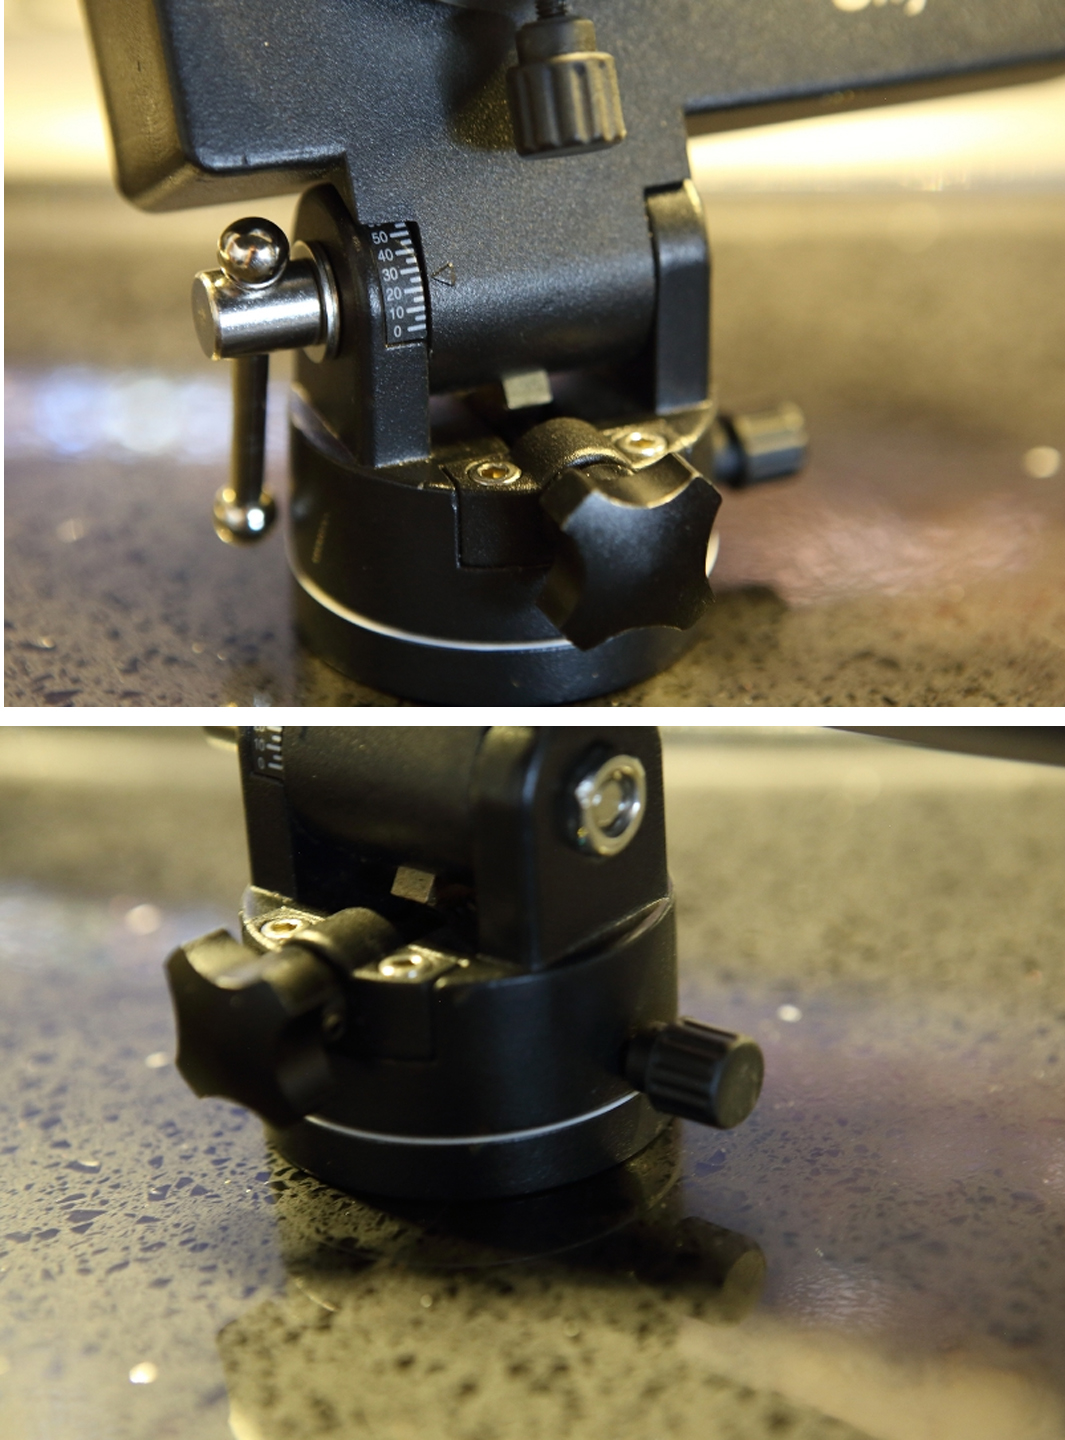 Figure 4: Left, we see the elevation adjustment knob(black, middle), latitude degree markings, and elevation clamp (silver-barred knob on the left). On the right is the azimuth wheel (rotates along the silver line) and azimuth wheel lock.